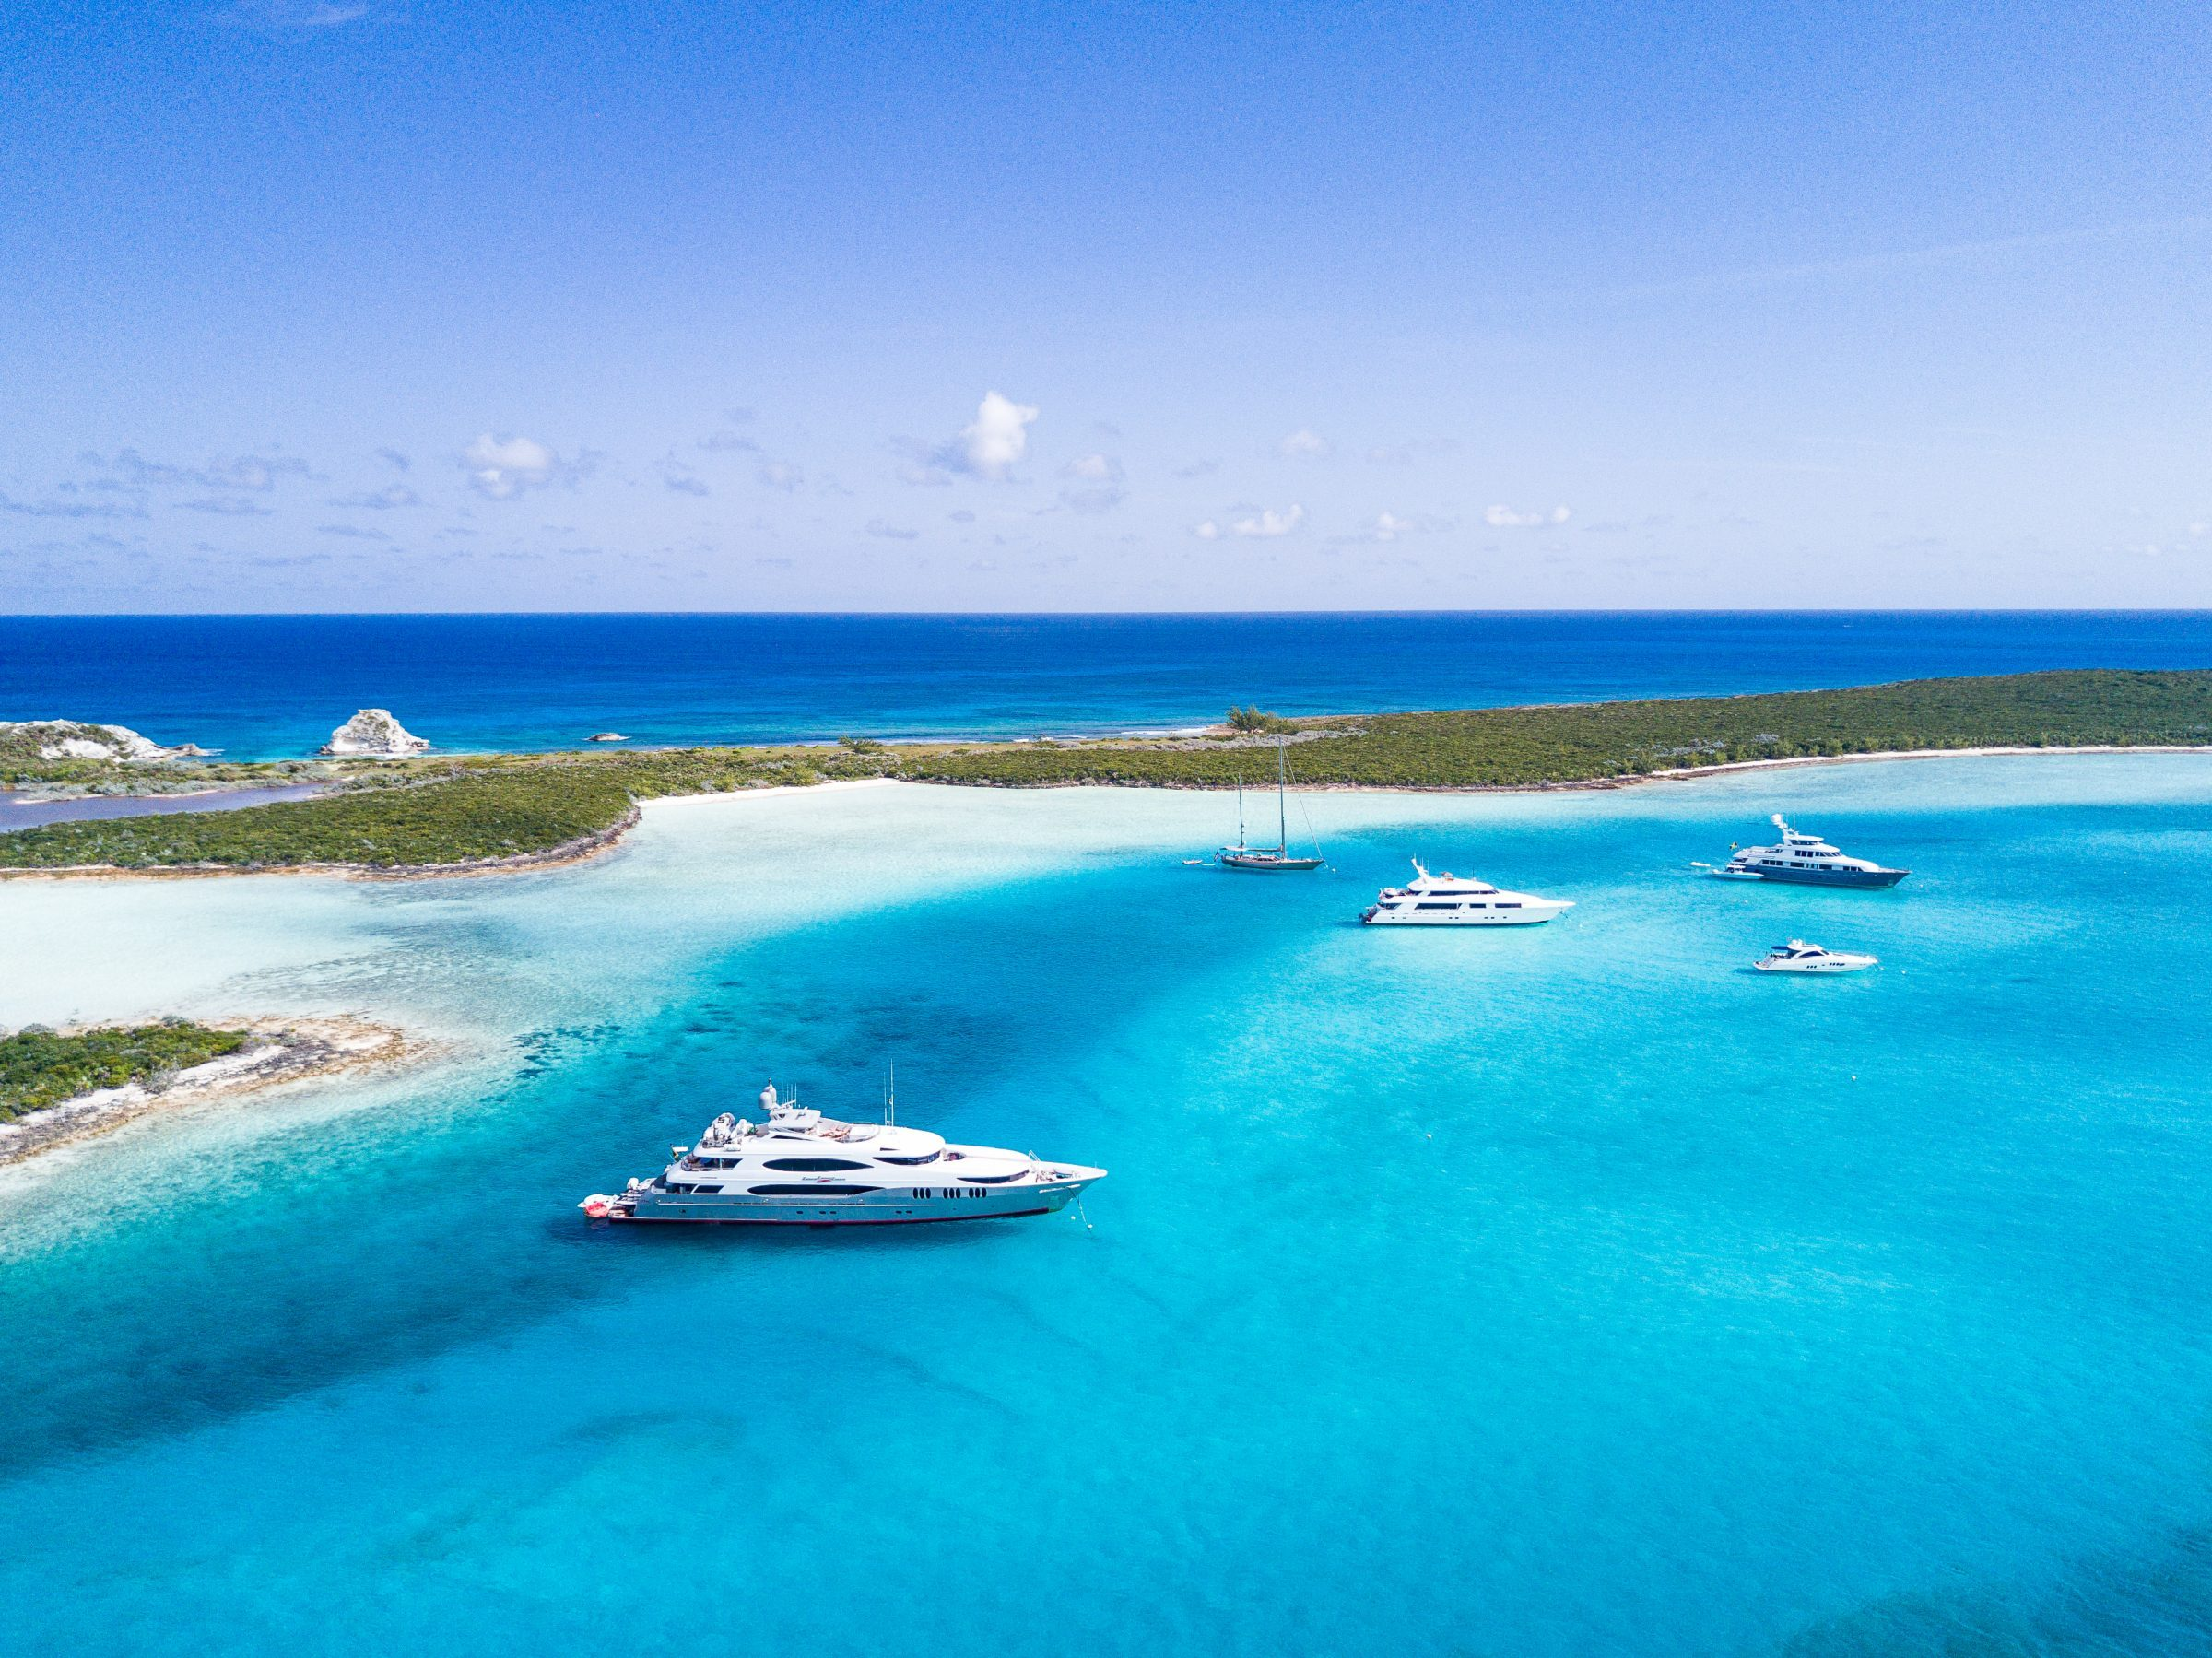 group of tandem superyacht charters at anchor in blue caribbean waters of bahamas